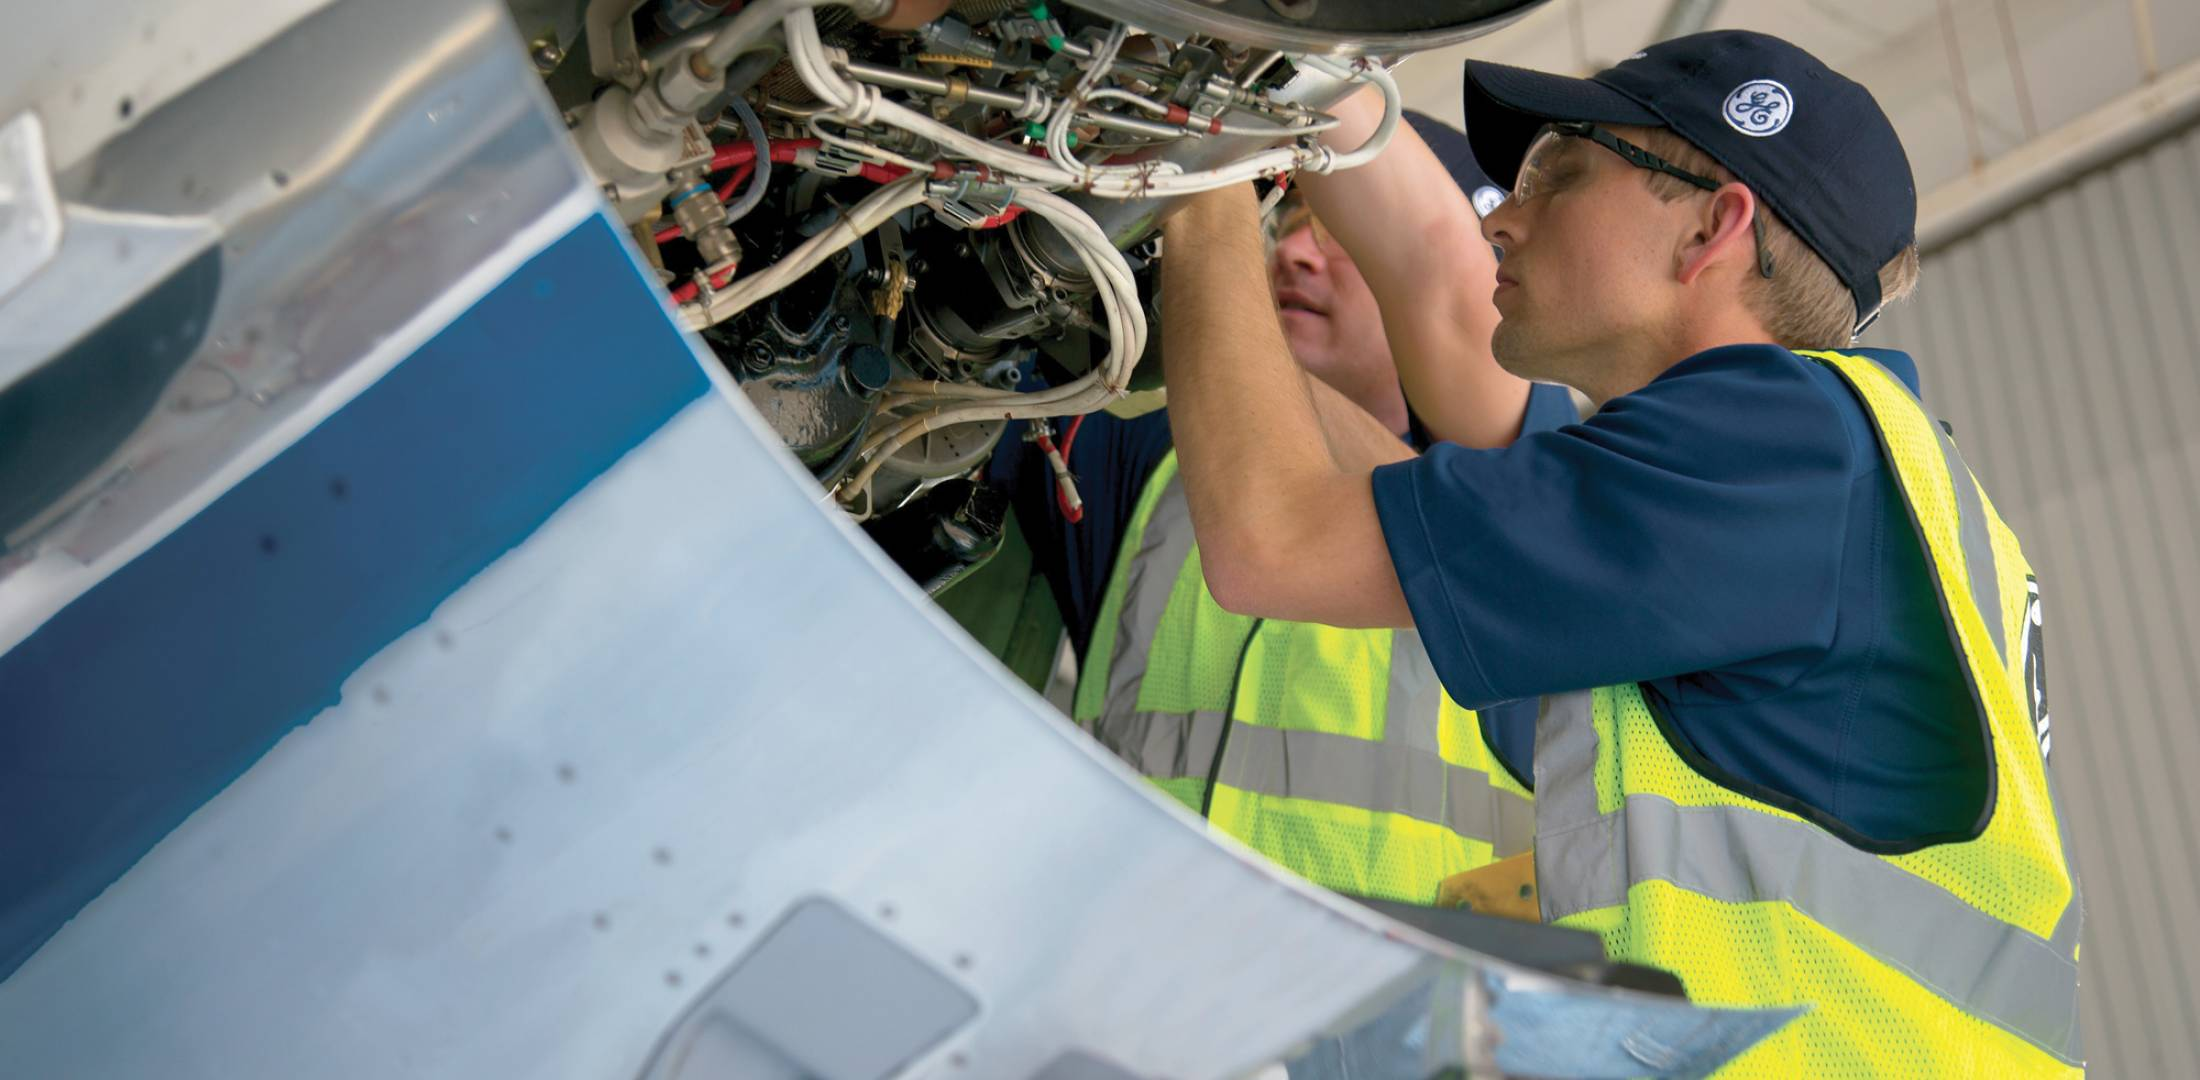 Ge Service Technician Product Support Survey 2016 Part 3 Engines Business Aviation